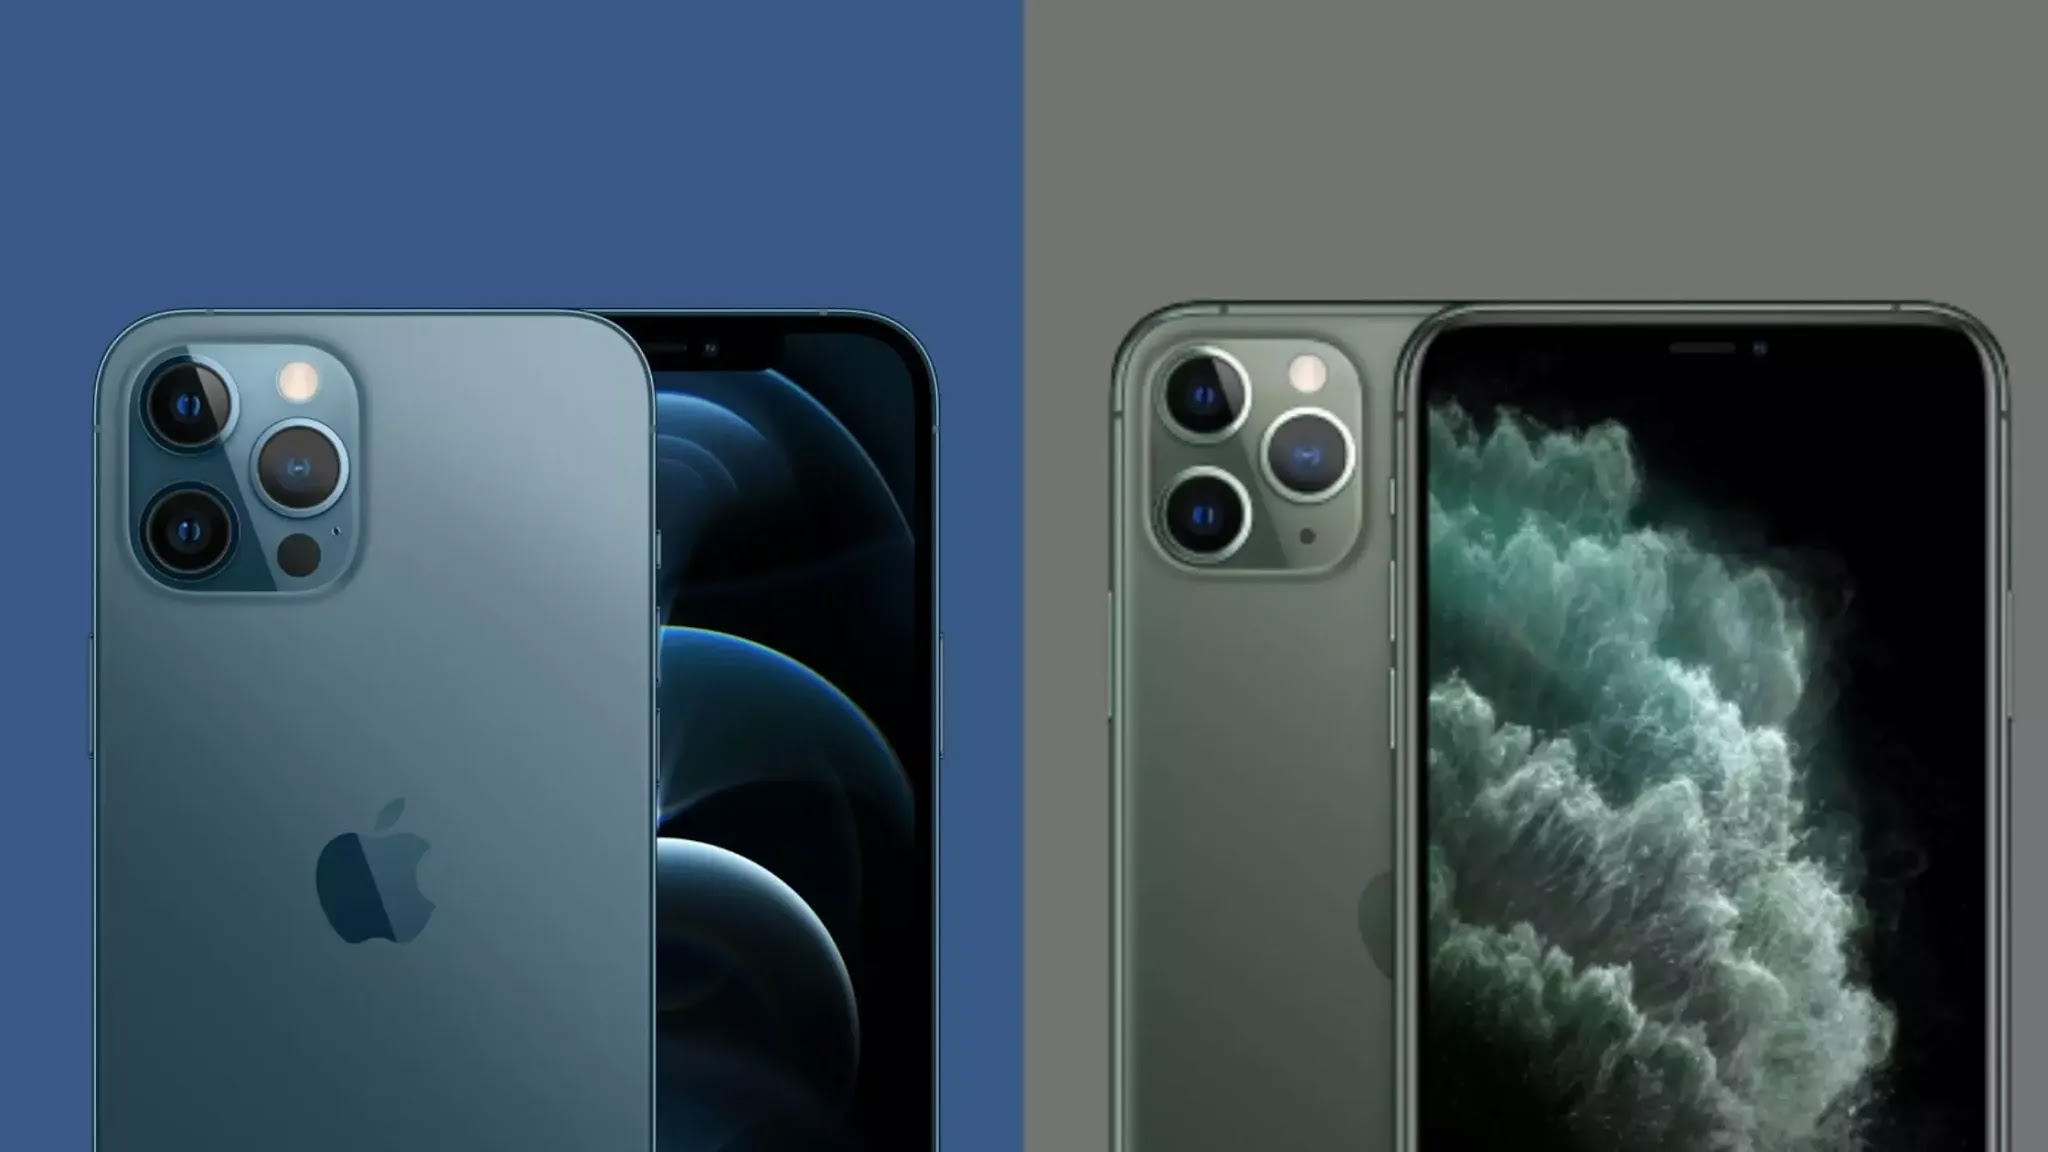 Comparing-iphone-11-pro-max-and-iphone-12-pro-max-price-speciations-and-unboxing